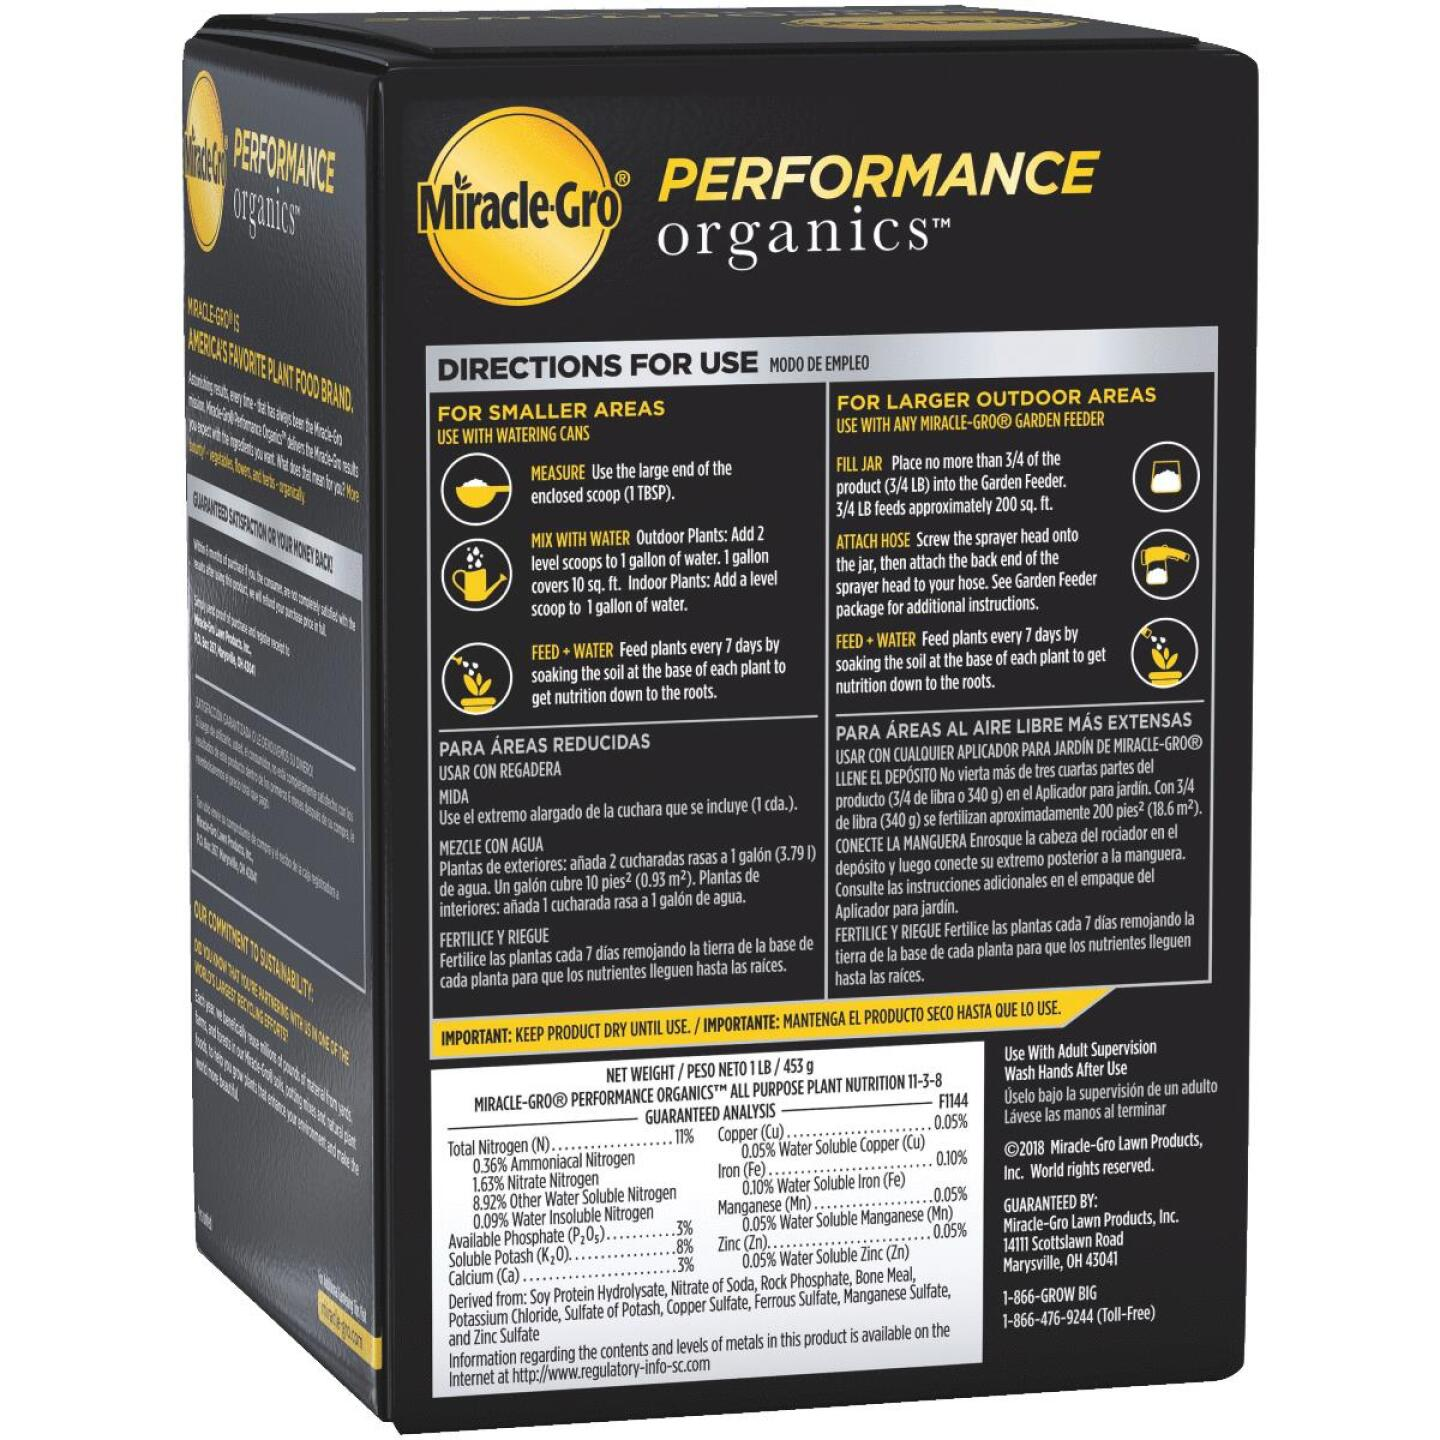 Miracle-Gro Performance Organics 1 Lb. 11-3-8 Dry Plant Food Image 2